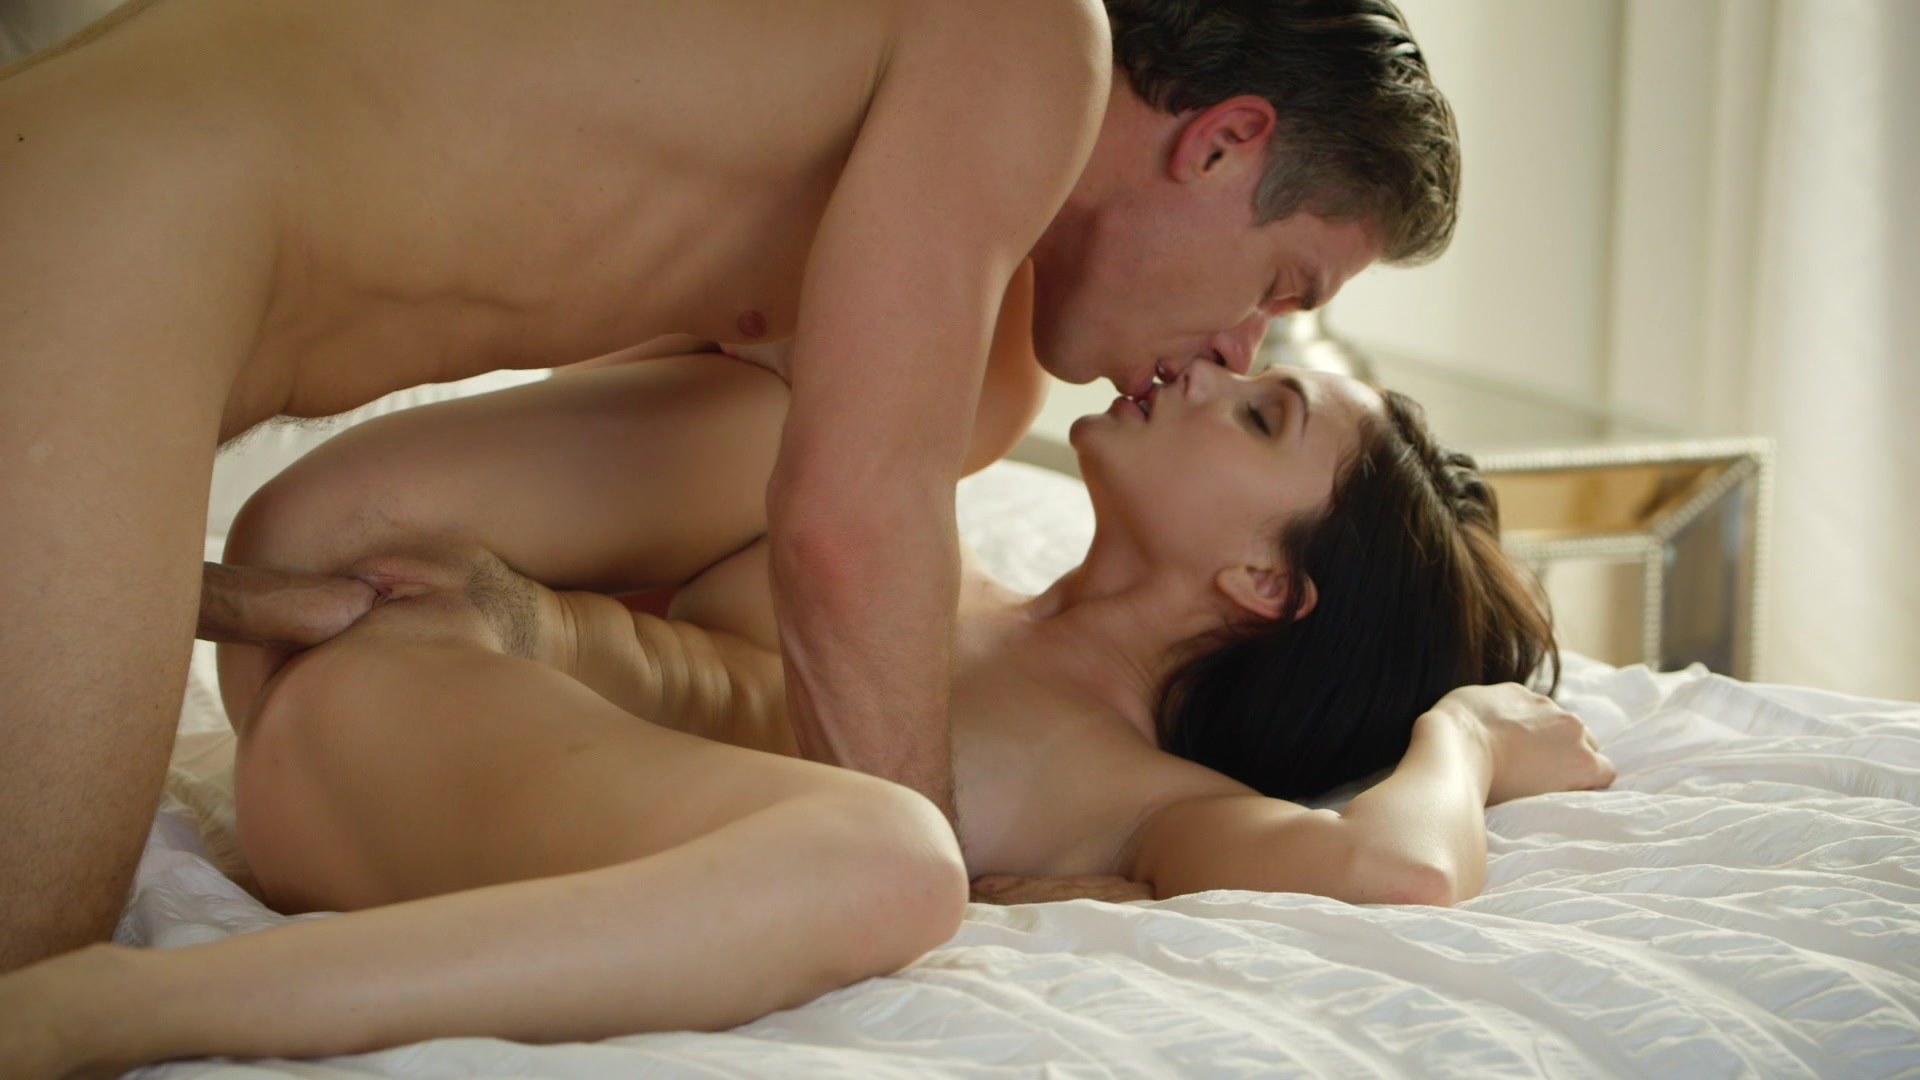 romantic-couple-sex-movie-women-split-nude